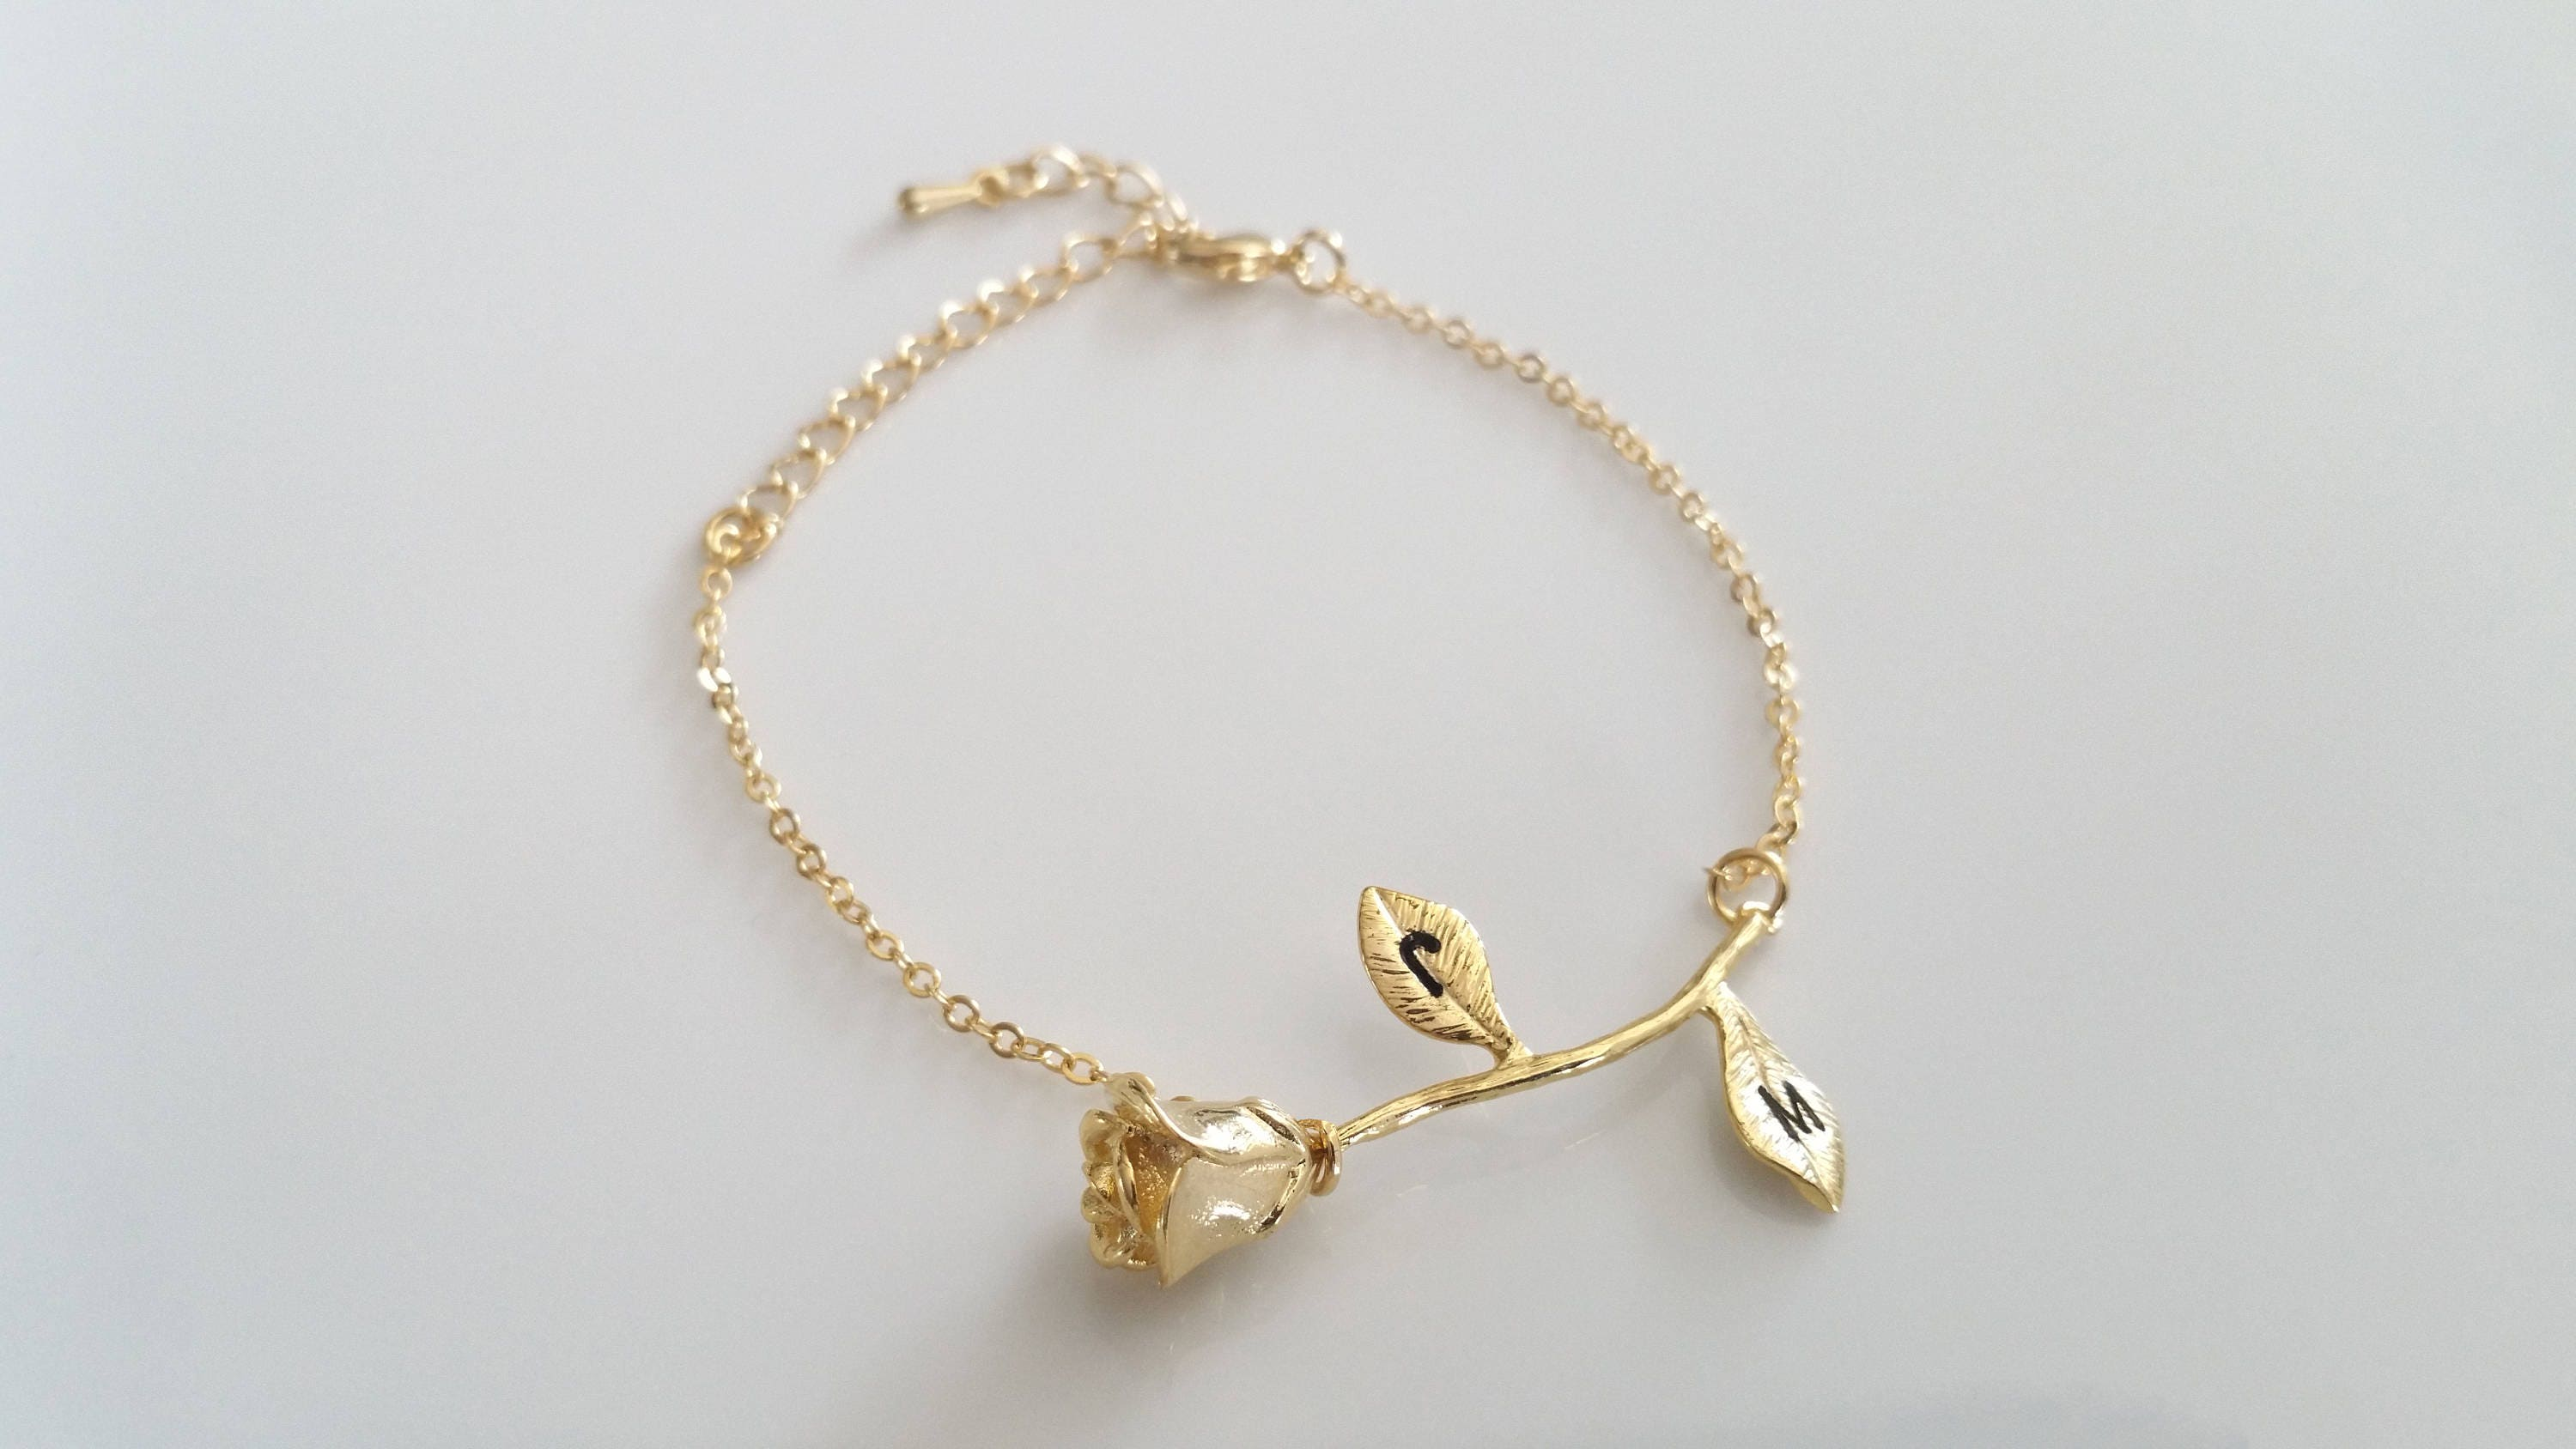 charm gold dhgate feet com plated bracelet fashion women product infinity from for design heart model anklets